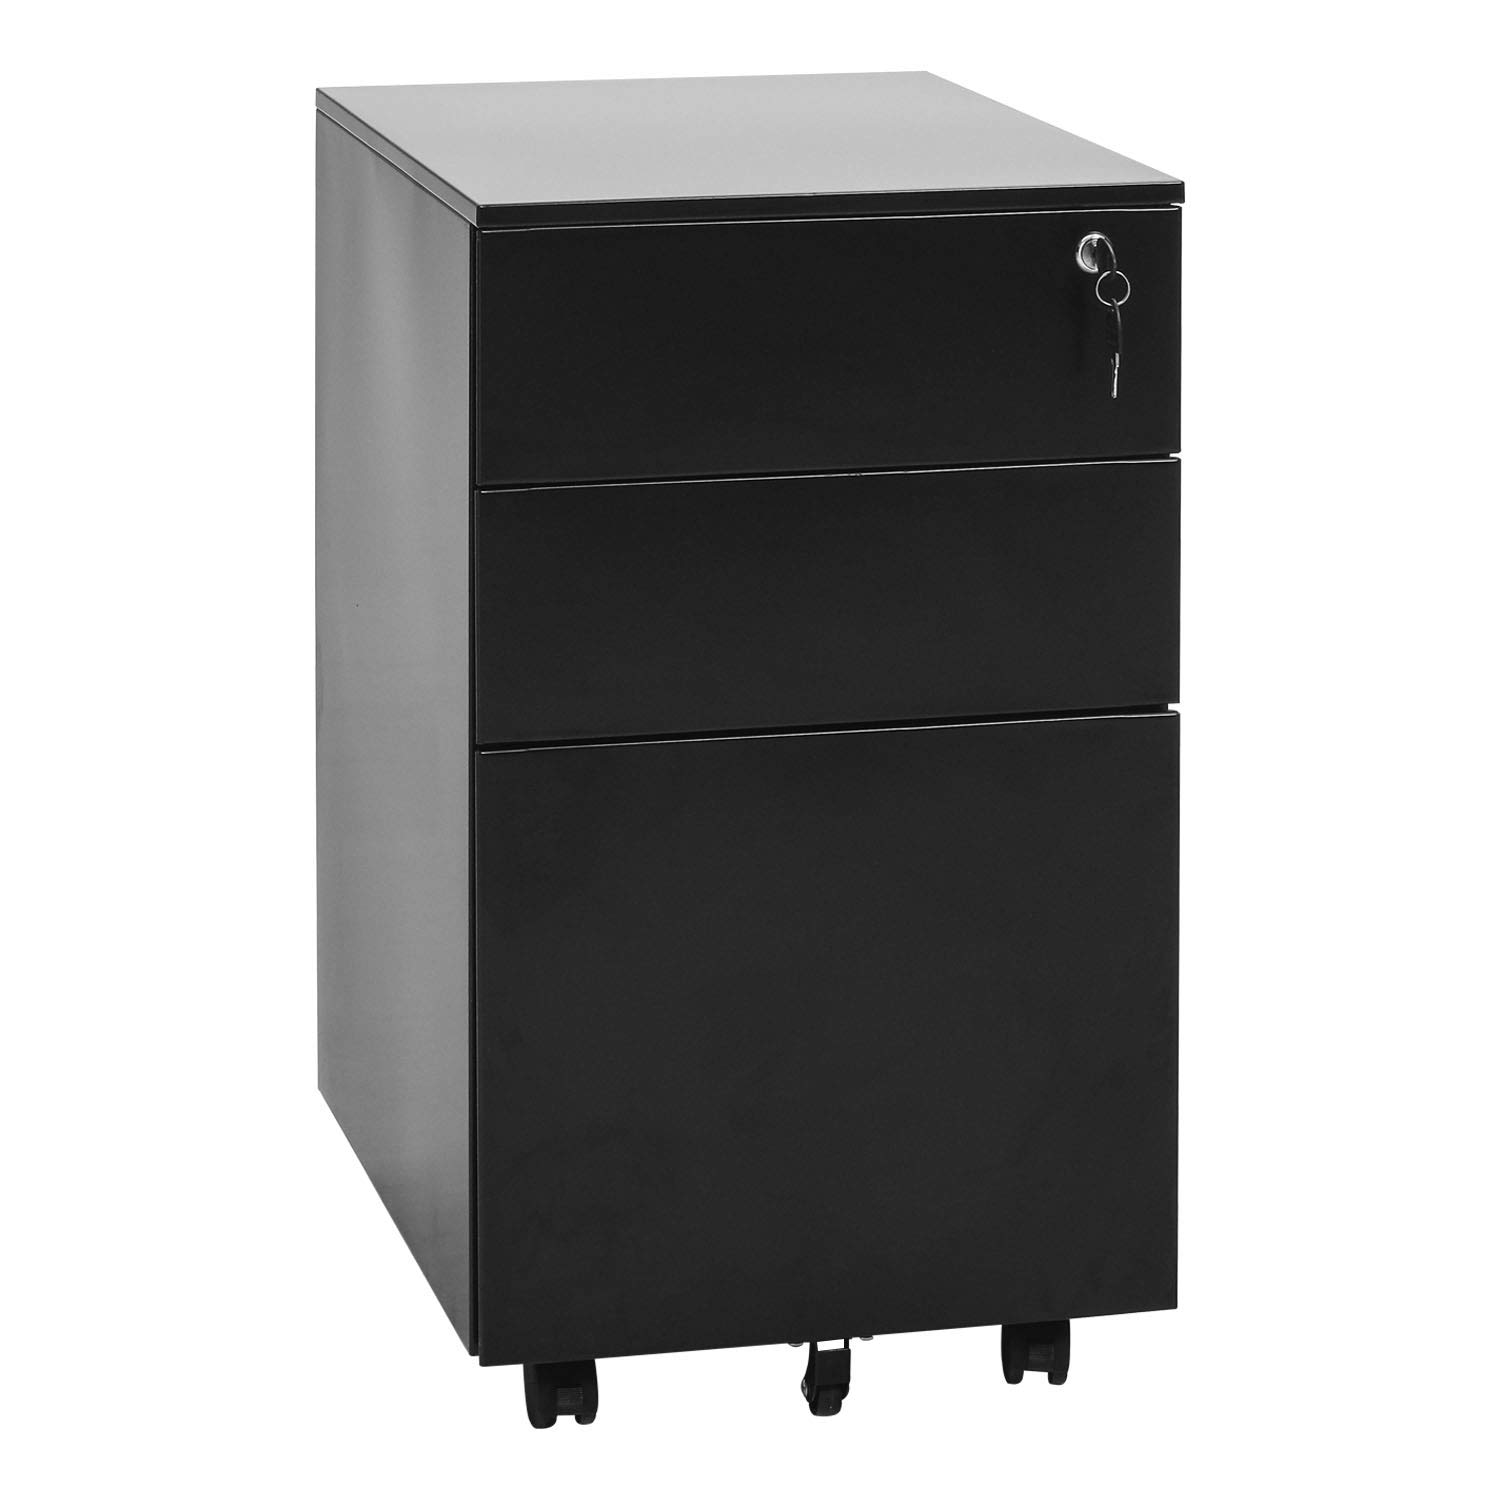 INVIE Mobility File Cabinet with Lock for Closet/Office,Metal Rolling Cabinet 3 Drawers Fully Assembled (Black C) by INVIE